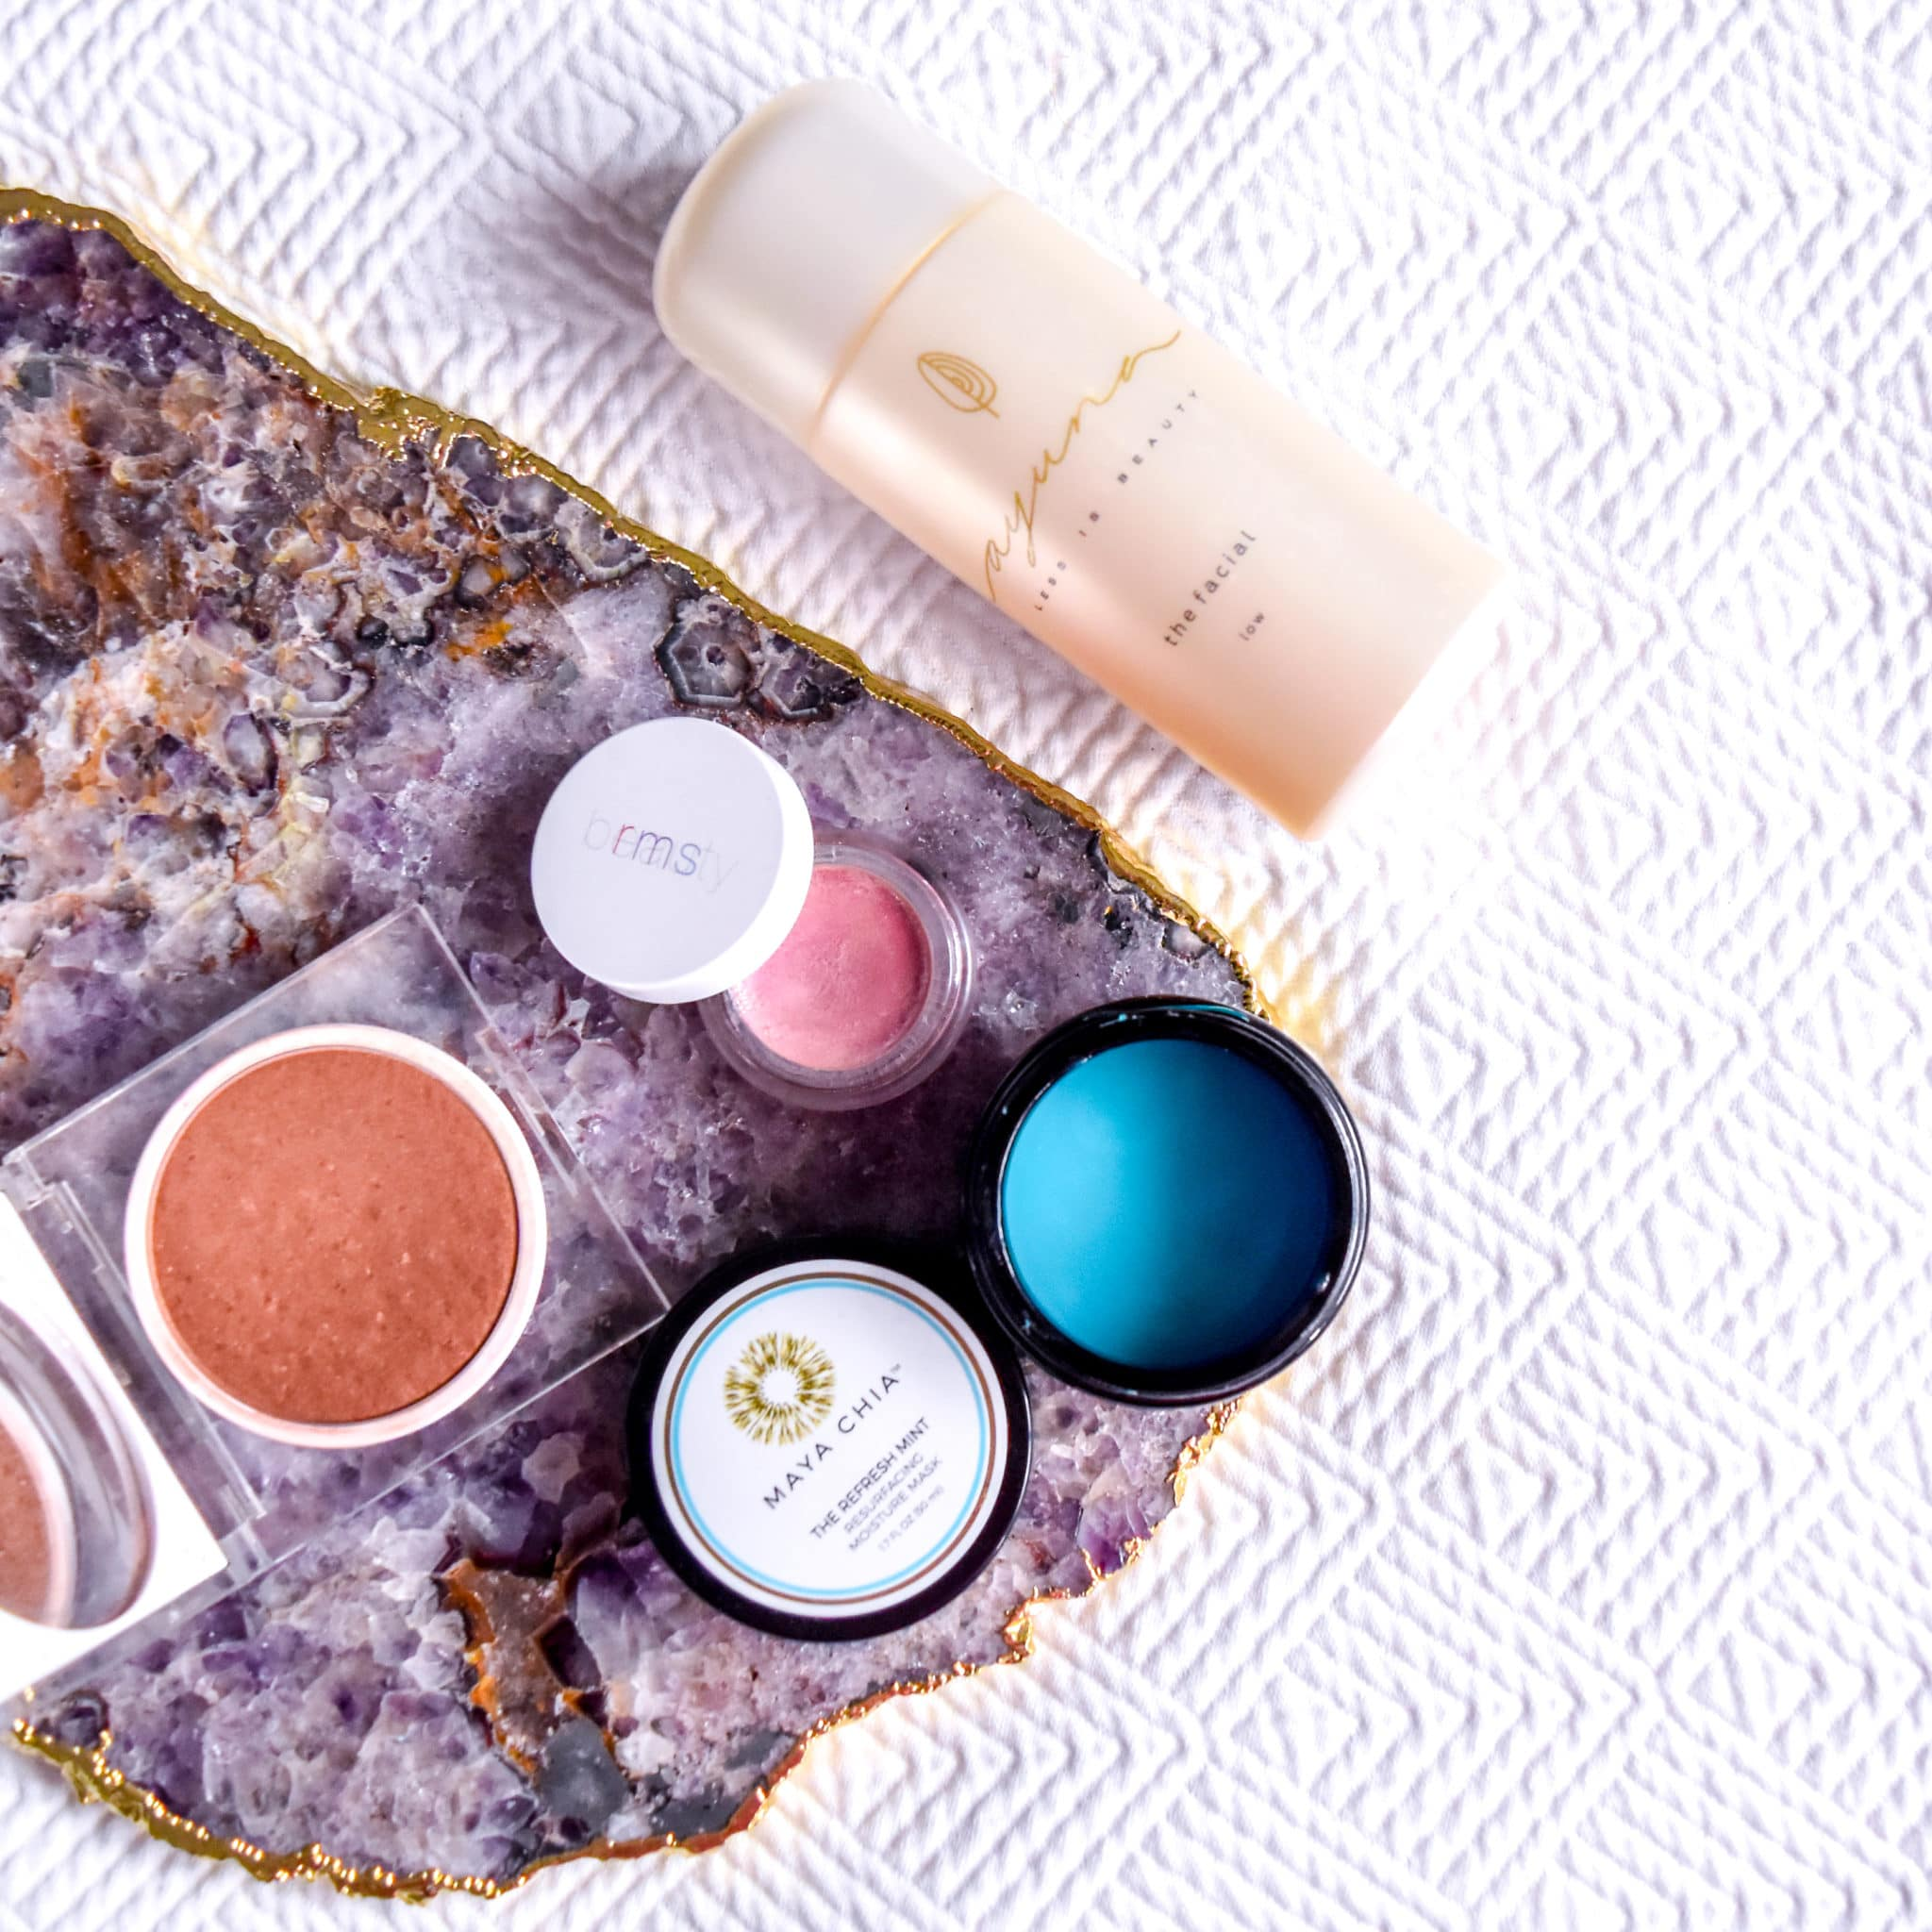 My favorite NEW clean beauty skincare products of 2019! I'm obsessed with all of these green and organic beauty wonders - Maya Chia the Refresh Mint mask, RMS luminizing powder bronzer and amethyst luminizer and Ayuna the Facial from Beauty Heroes.